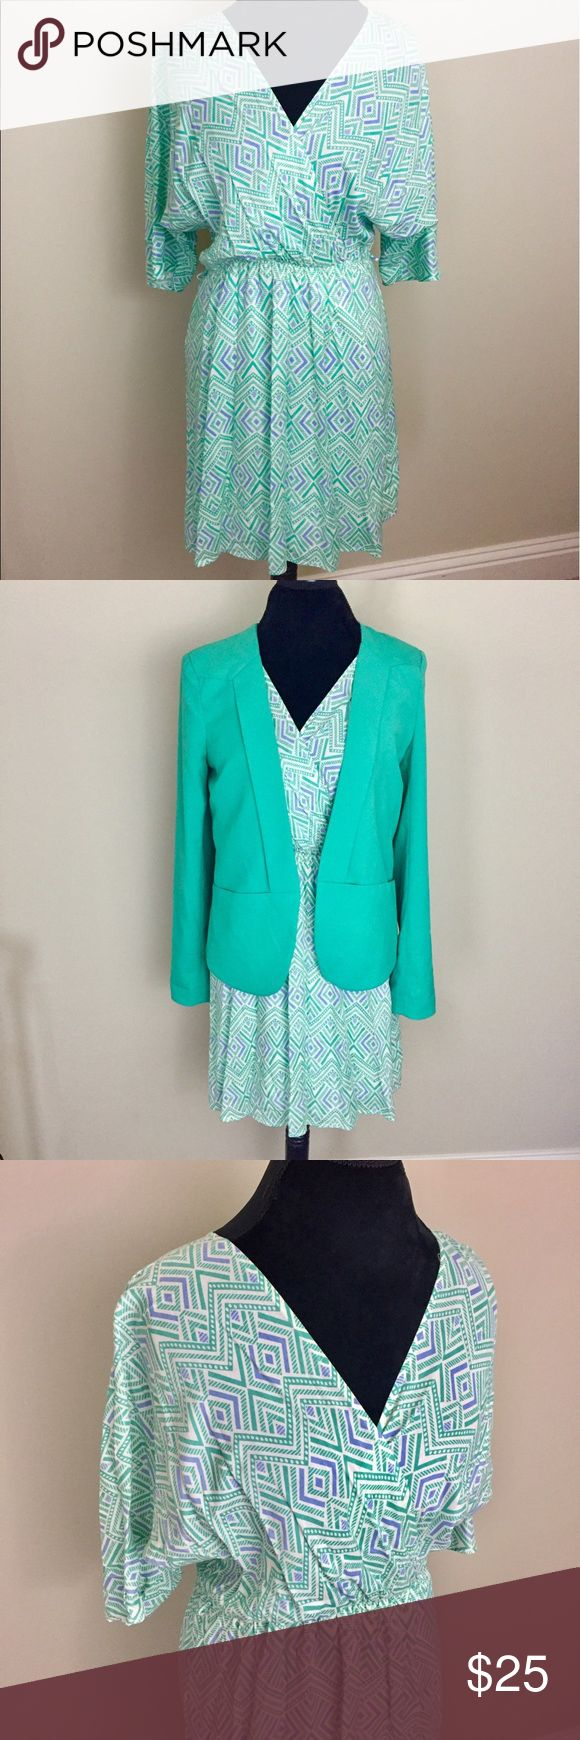 "Everly Mint Green Dress and Blazer Bundle Everly size medium mint green dress in Like new condition from Anthropologie. Boutique brand matching mint green Blazer in size large. Very good condition overall, has a small rip in inner lining that does not affect the look or wear. Approximate measurements flat and unstretched: Dress pit to pit 20"", length 35"". Blazer pit to pit 17"", length 23.5"", shoulders at top across Back between sleeves 16"", sleeve length 24"". ⚓️Any measurements listed are…"